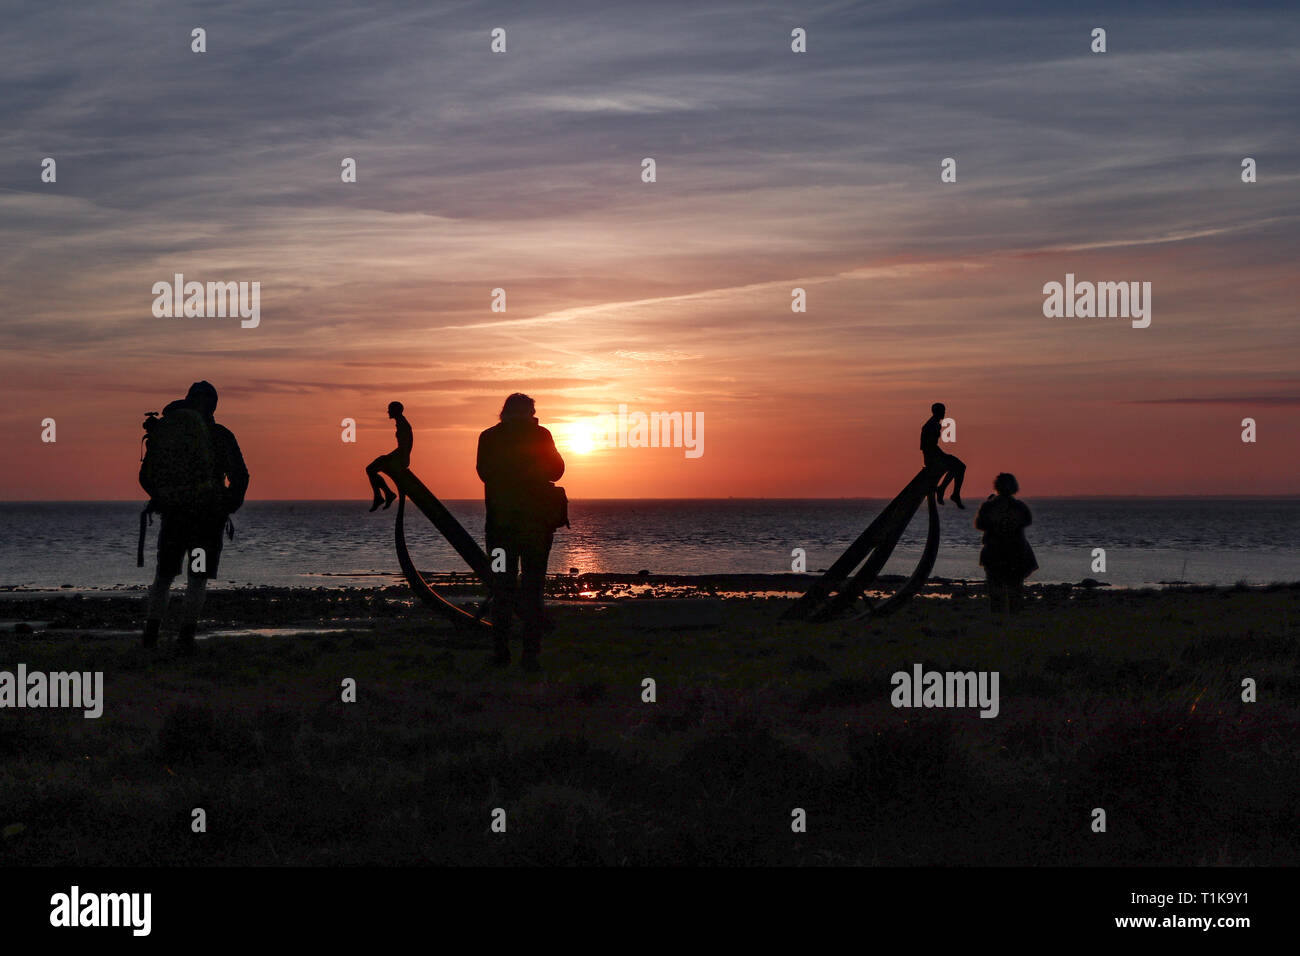 Half Moon Bay, Heysham, Lancashire, 27th March 2019 Anna Gillespies The Ship has gone on display at Halfmoon Bay at Heysham the sculpture comissioned by MOrecambe Bay Partnerships and Deco Publique as part of the Headlands to Headspace public realm sculptures project which was launched last summer Credit: Photographing_North/Alamy Live News - Stock Image